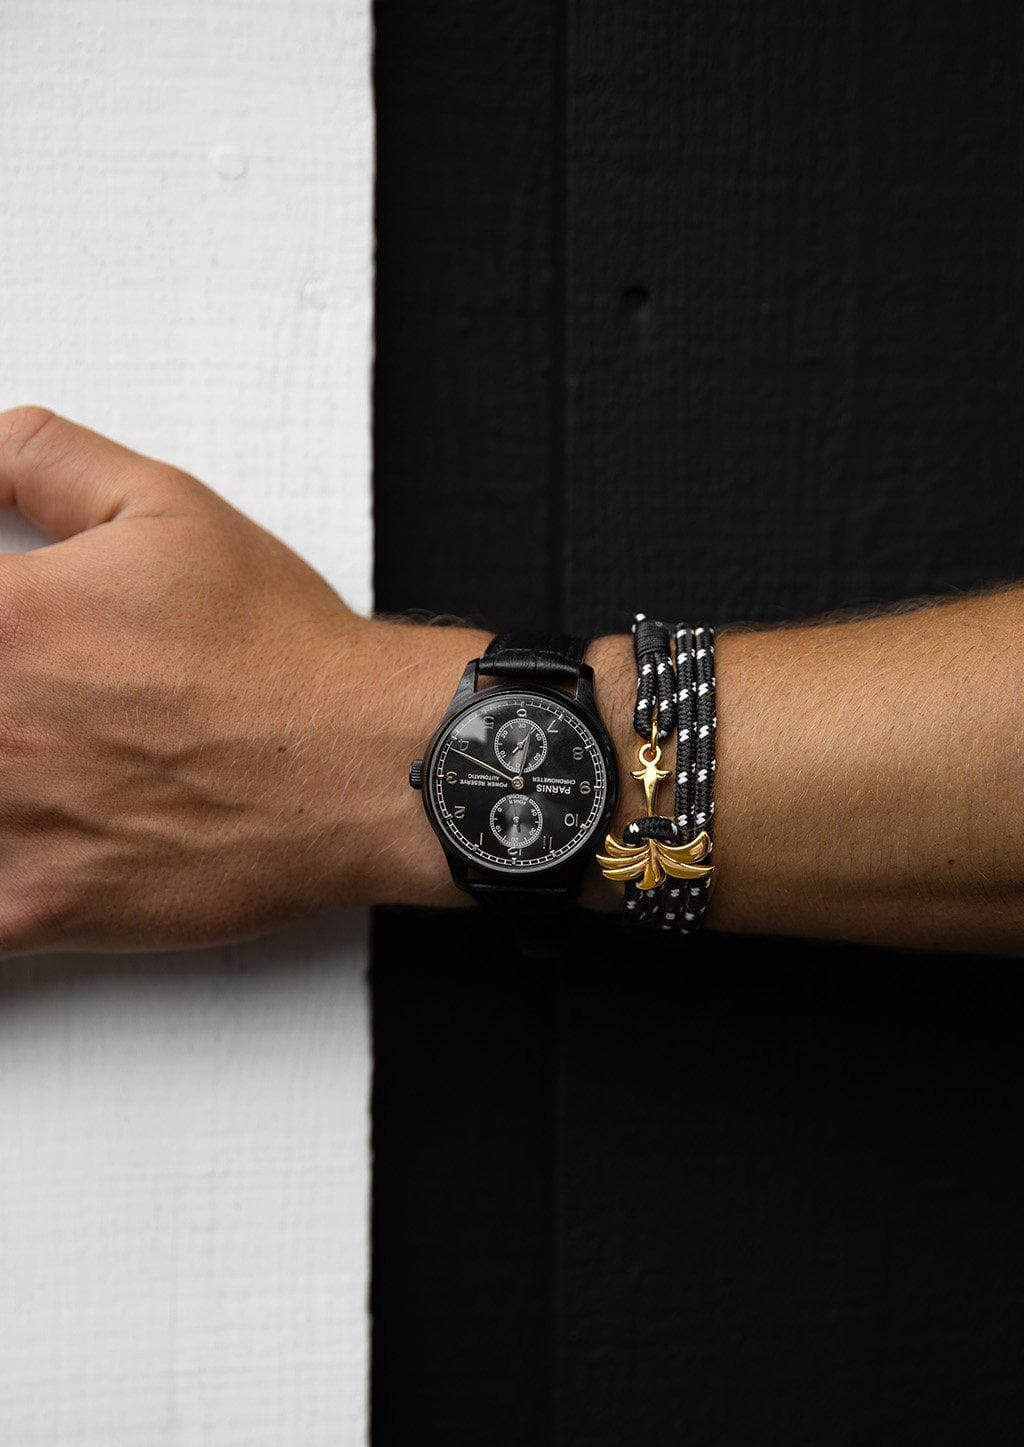 Trophy - Triple - Season two Palm anchor bracelet with black and white nylon band. Black and white wall.